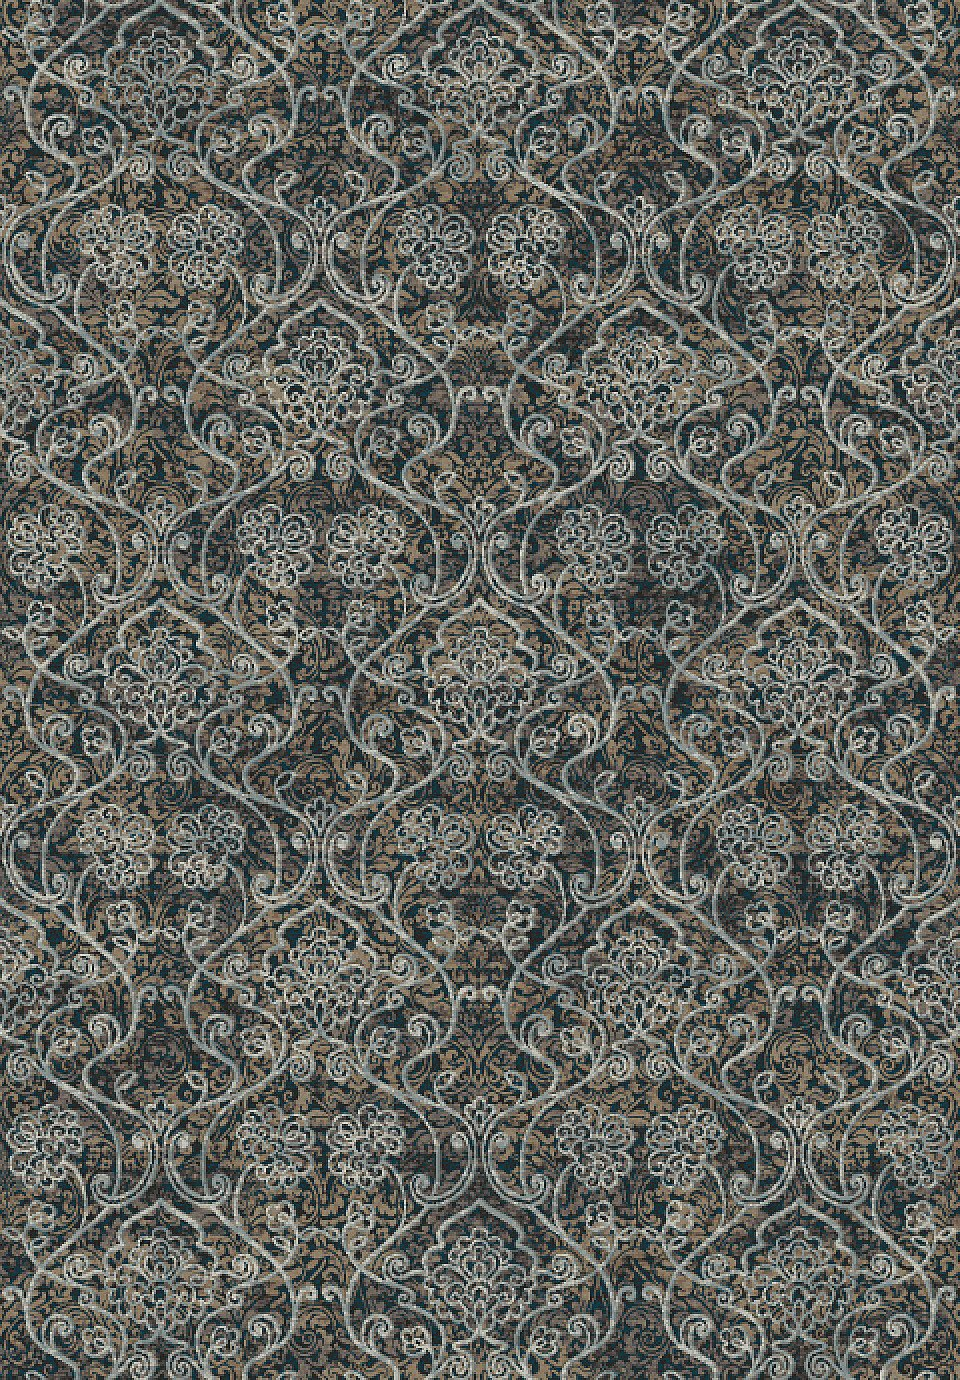 Dynamic Rugs Regal Taupe/Silver Medallion/Damask Rectangle Area Rug